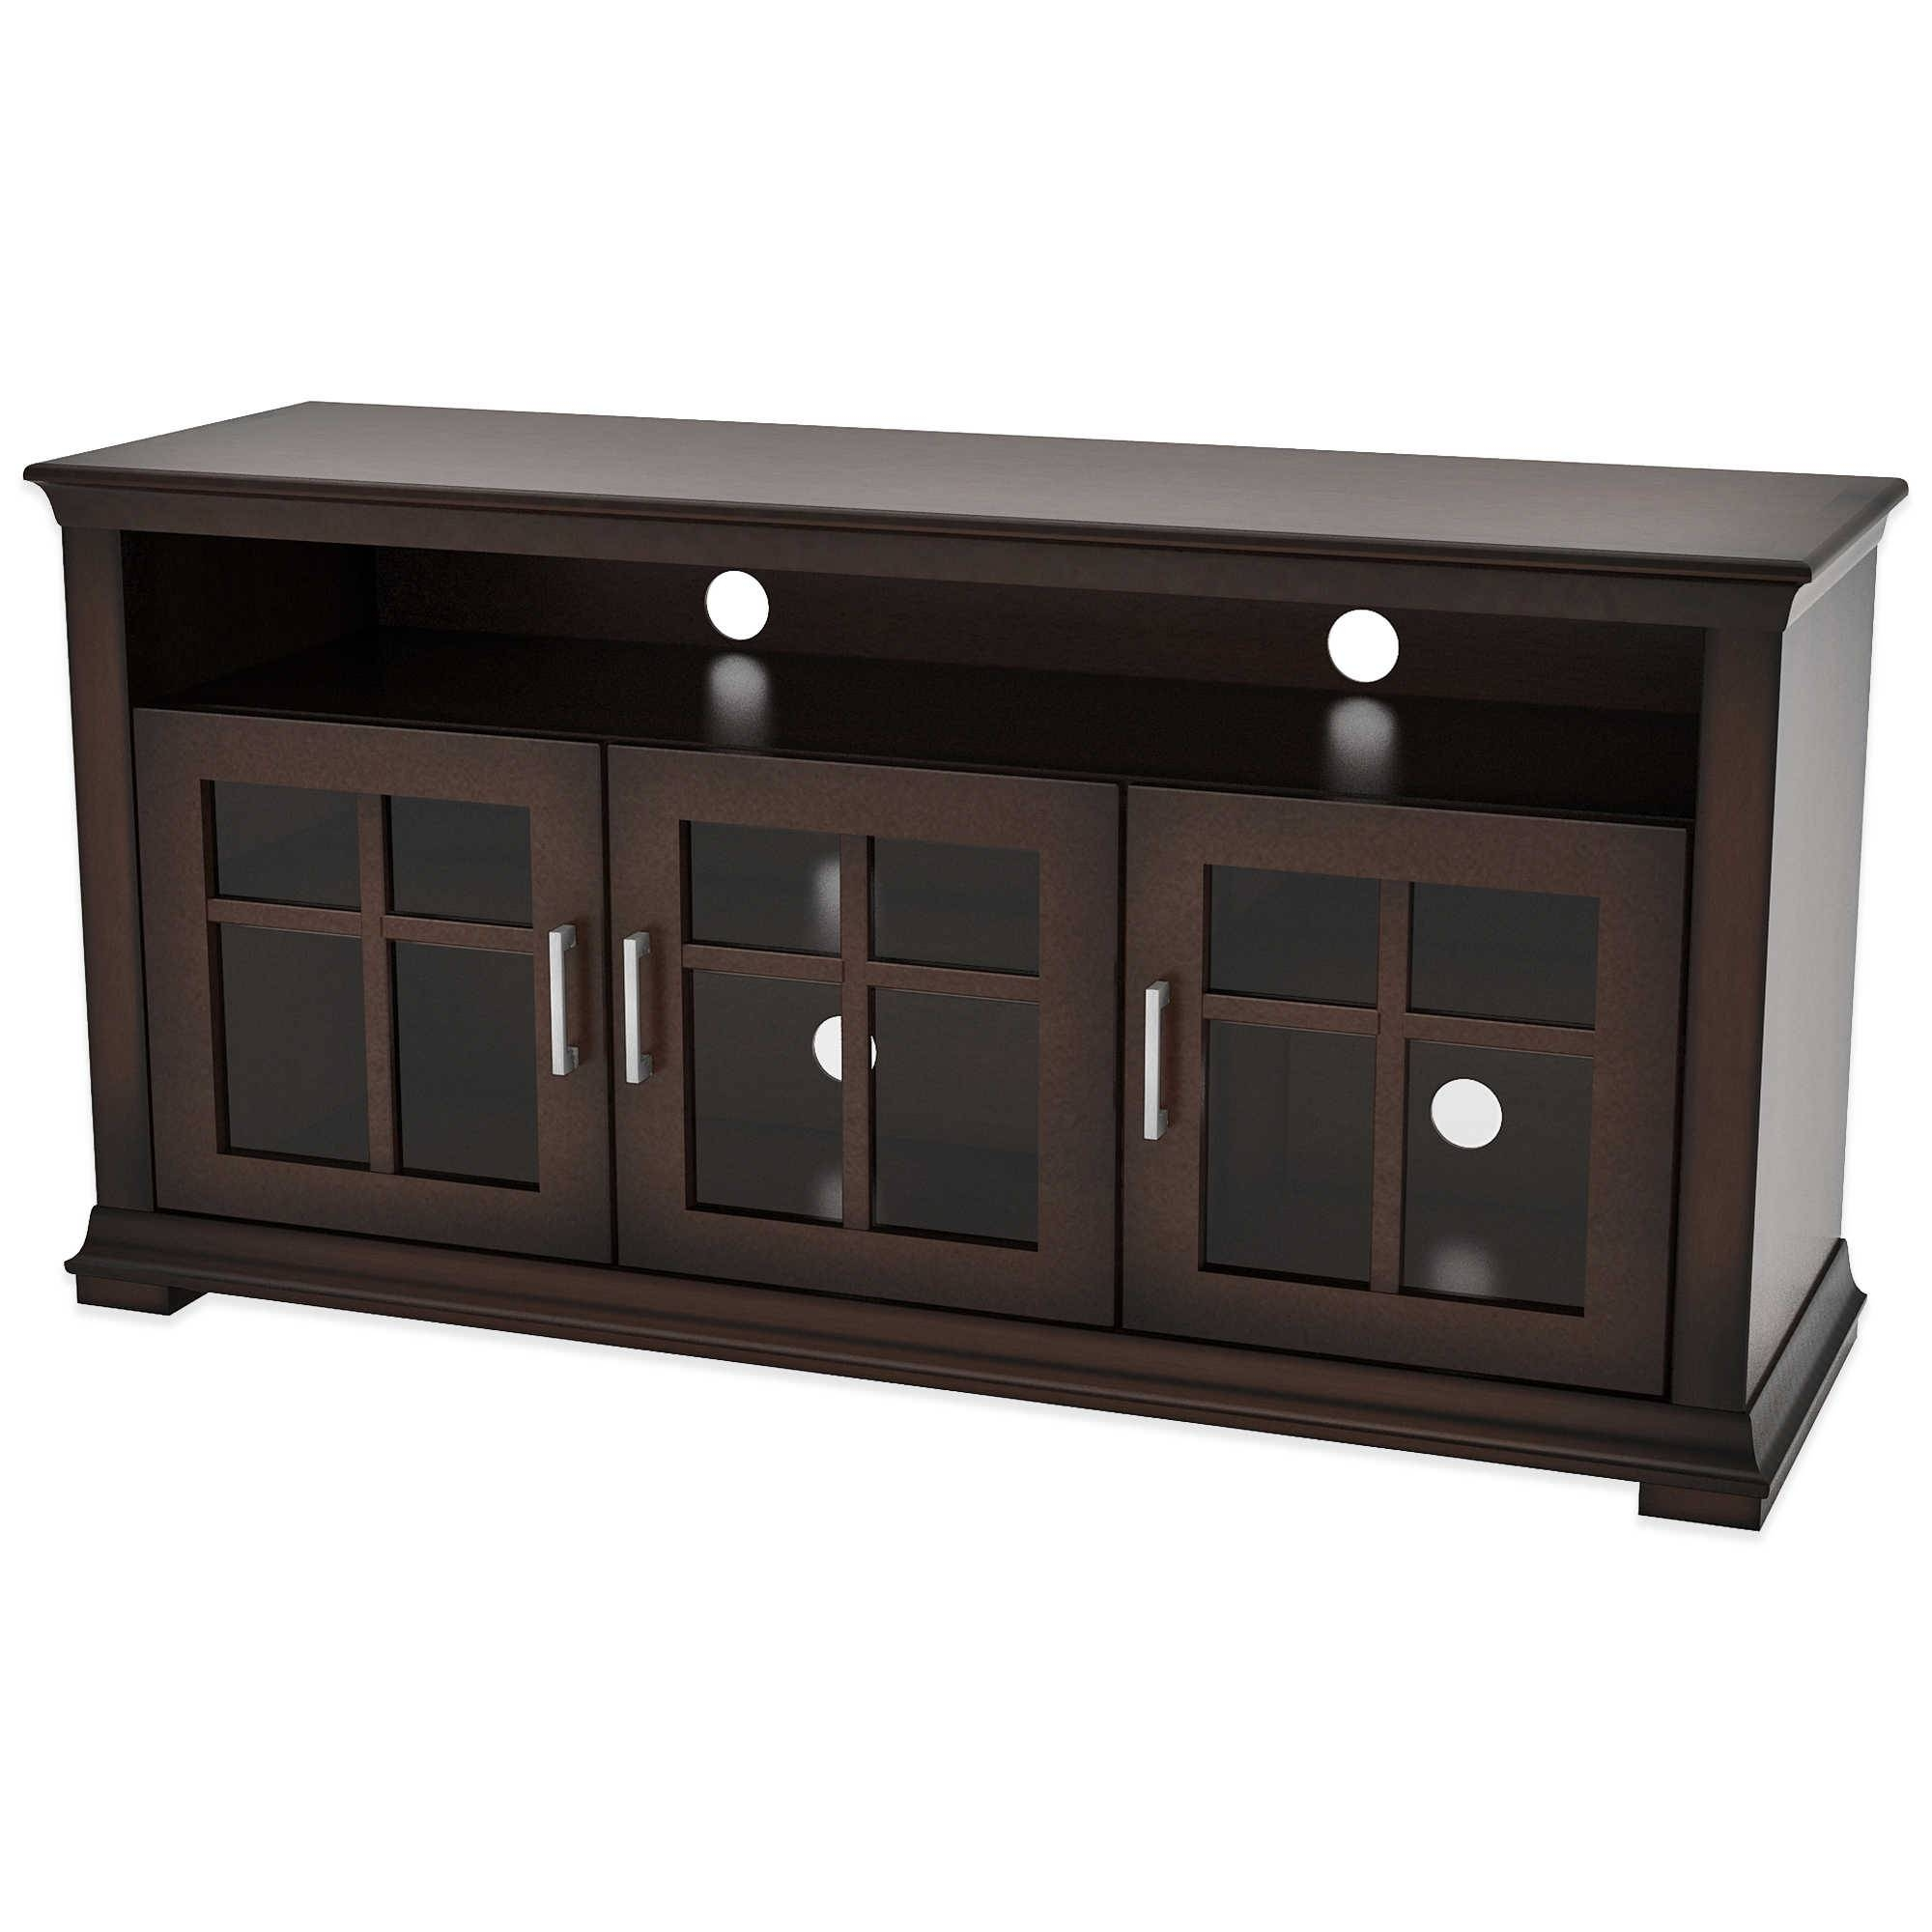 Short Espresso Wood Tv Stand With Triple Glass Doors And Open regarding Wooden Tv Cabinets With Glass Doors (Image 13 of 15)